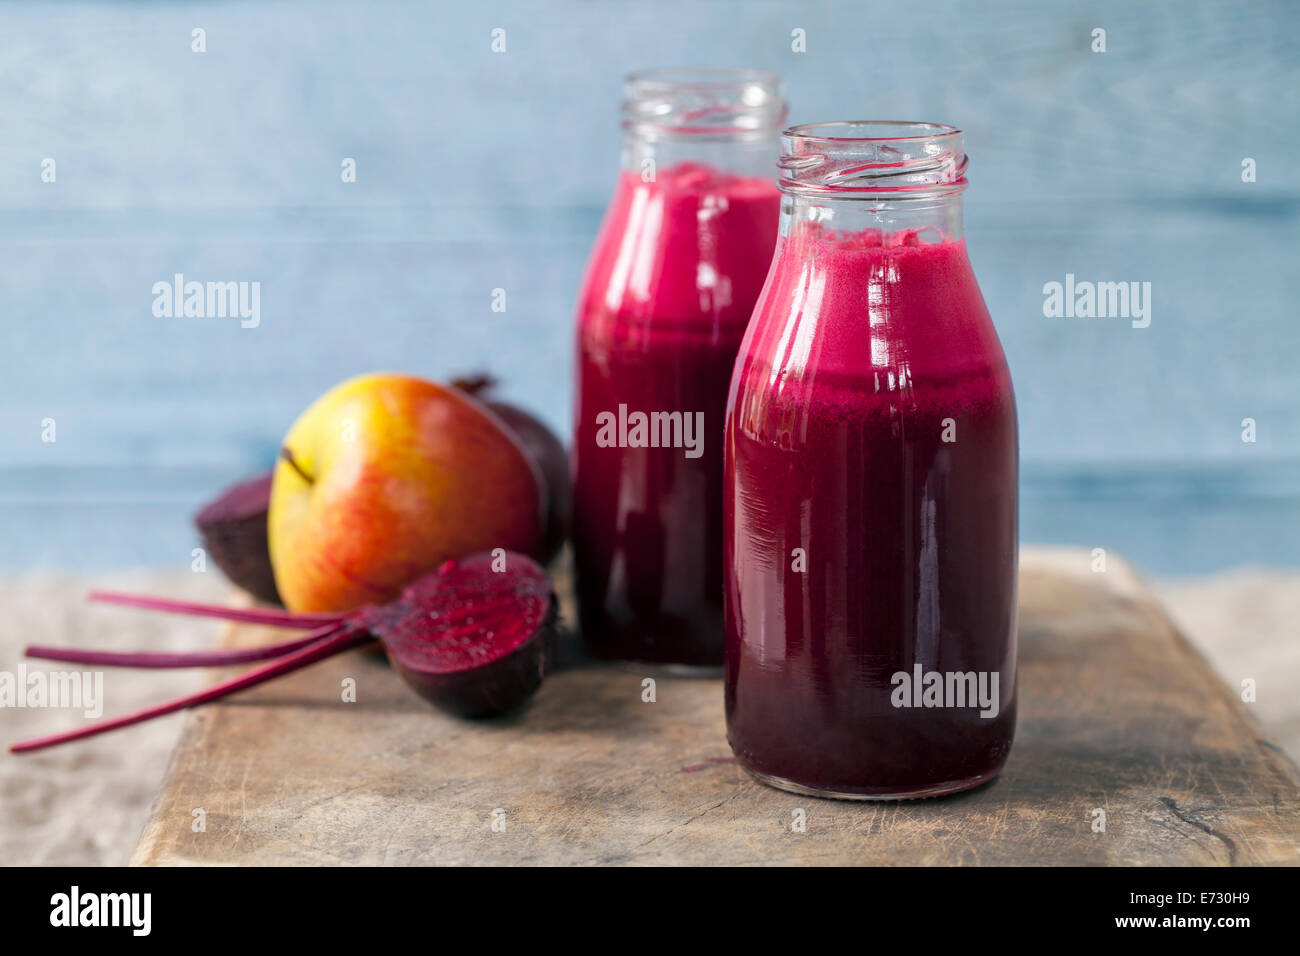 Beetroot and apple juice - Stock Image